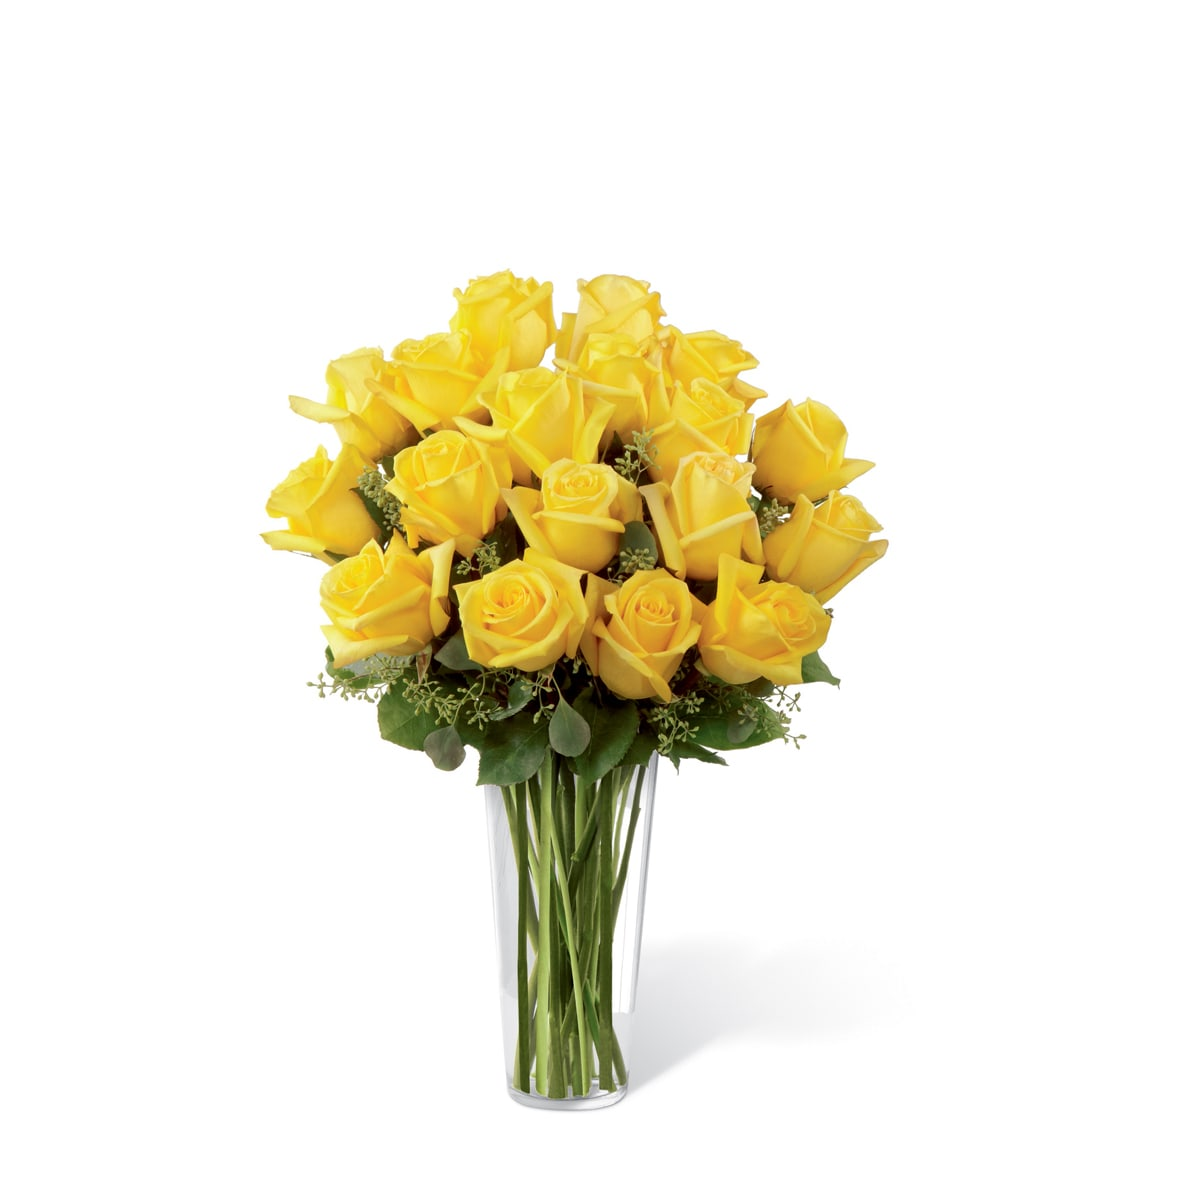 The FTD® Yellow Rose Bouquet